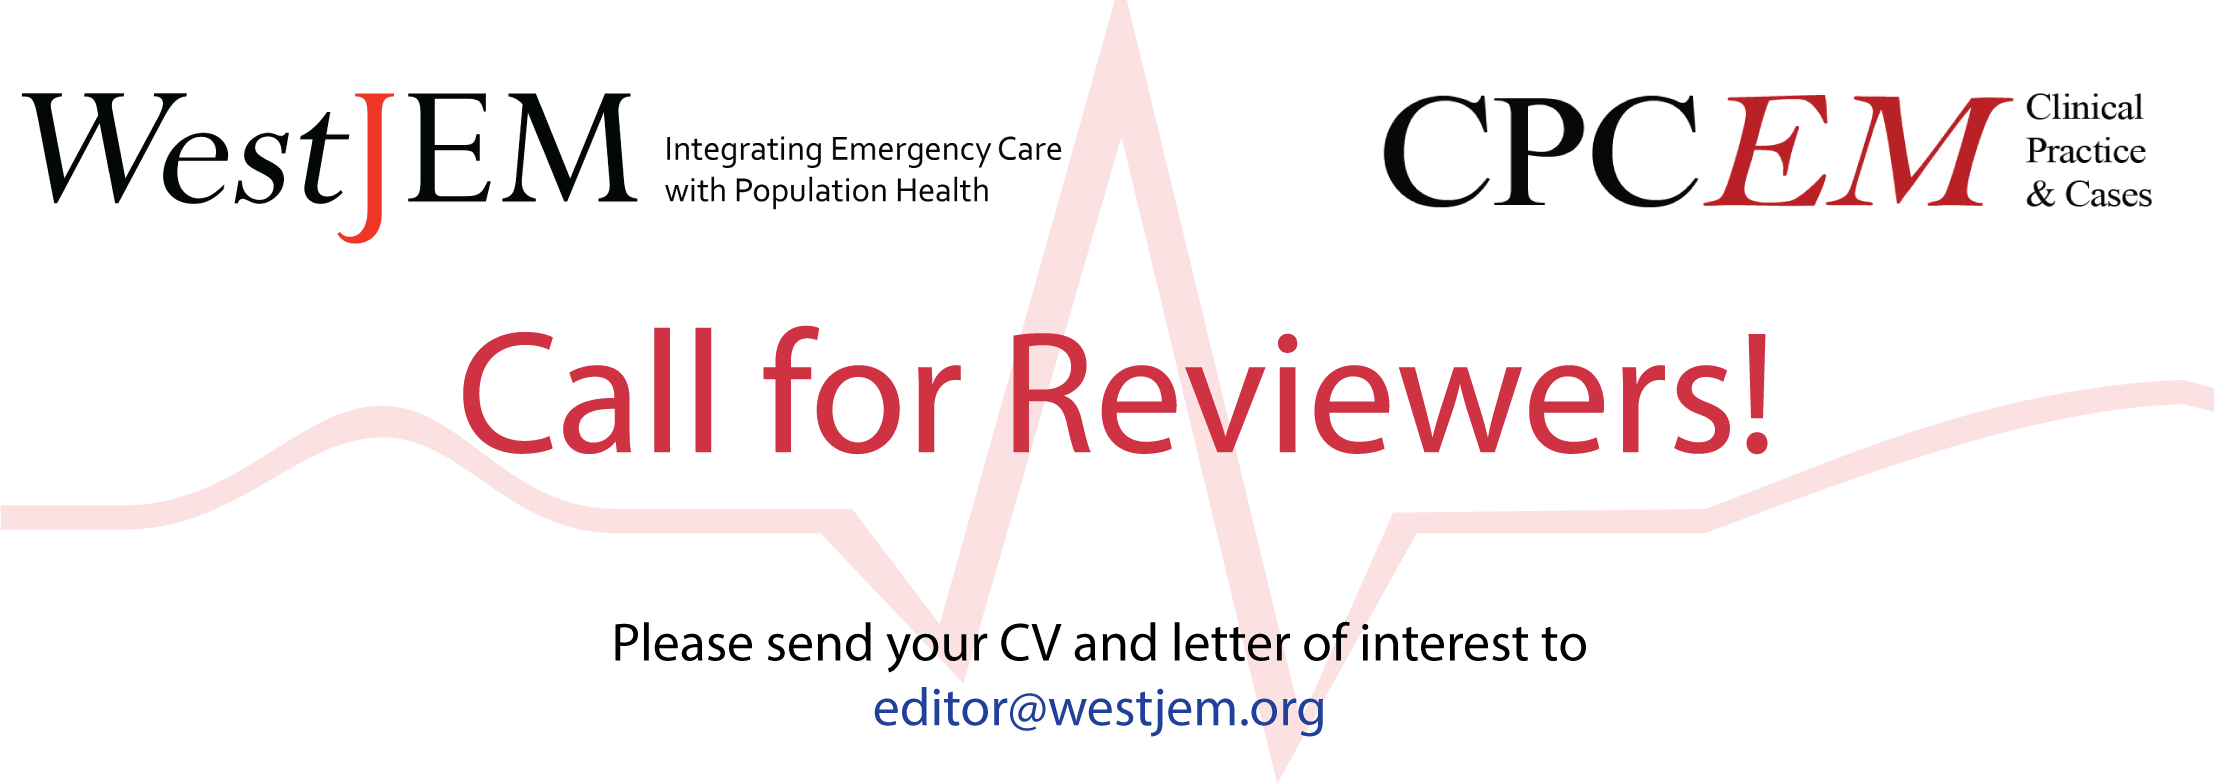 Call-for-Reviewers-Rotating-banner-2